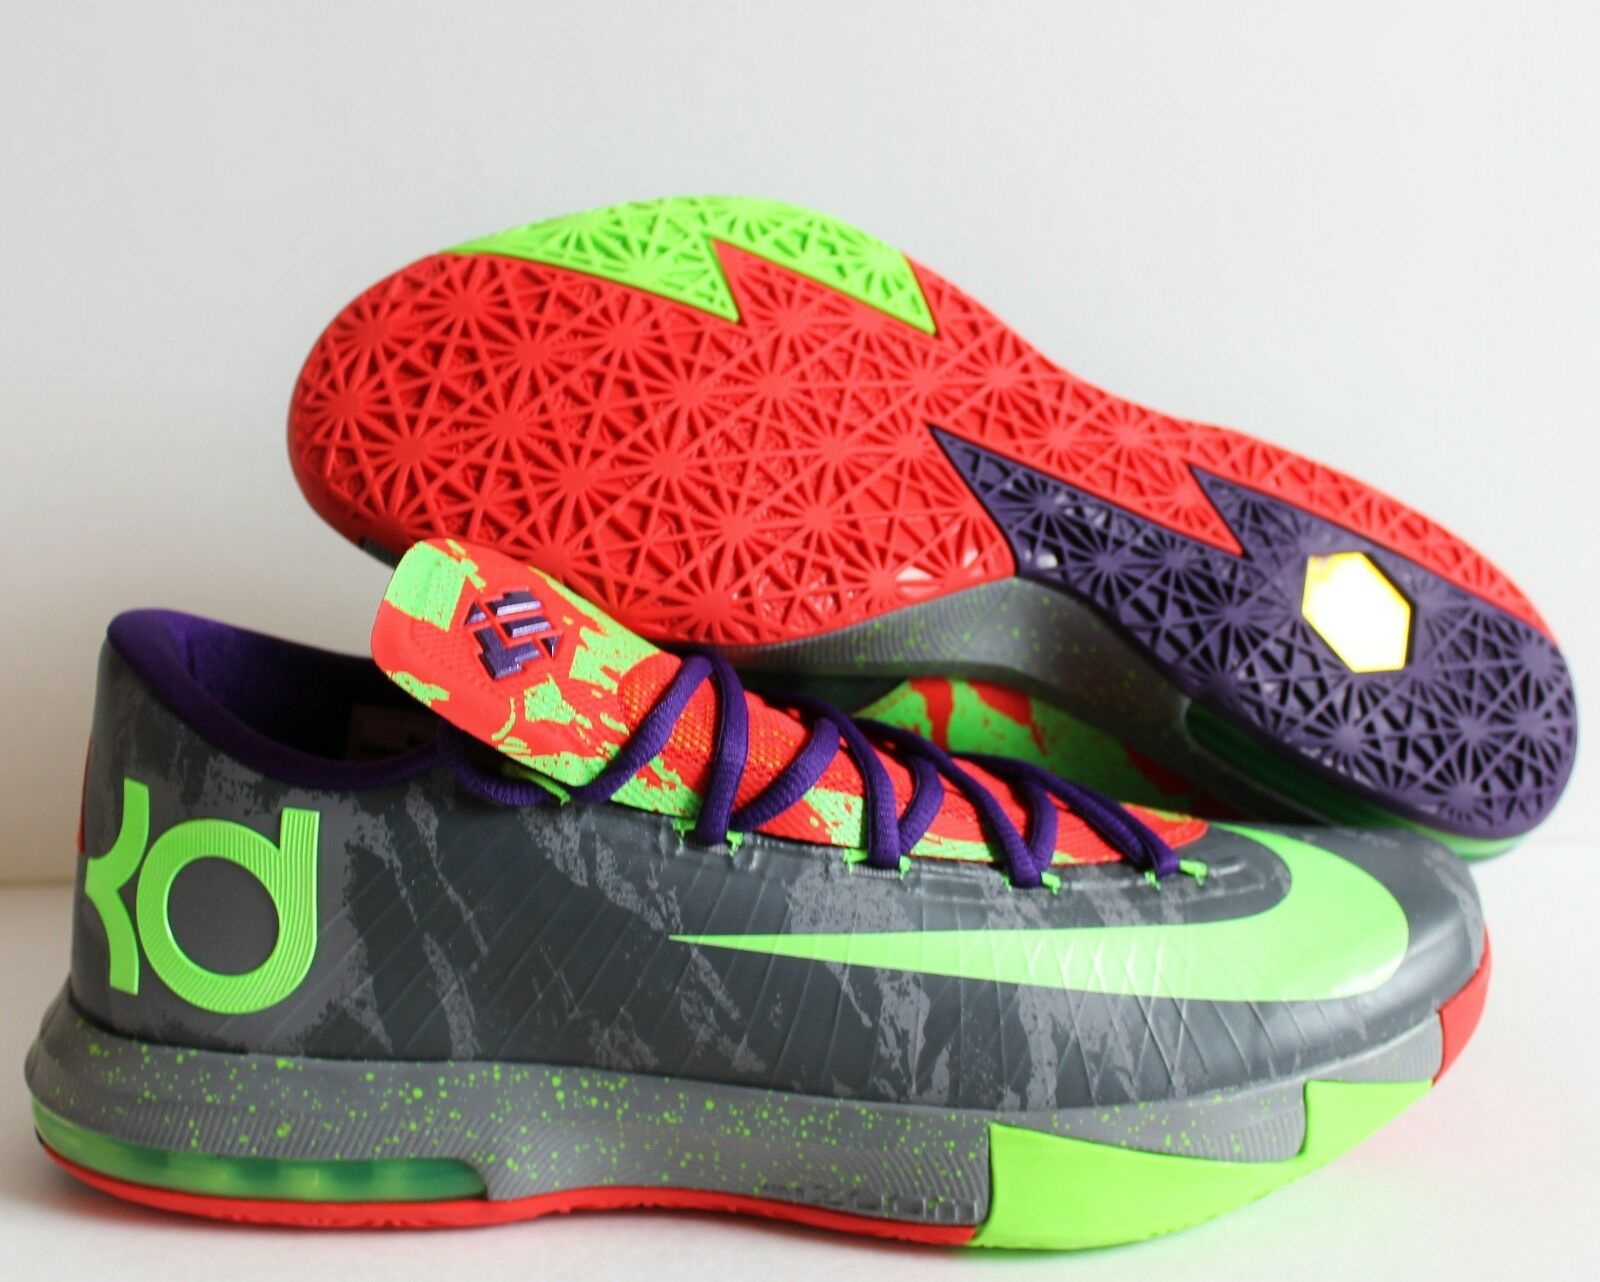 Nike KD VI 6 Energy Electric Green-Bright Crimson-Cool Grey Grey Grey SZ 12 [599424-008] 3ee00c